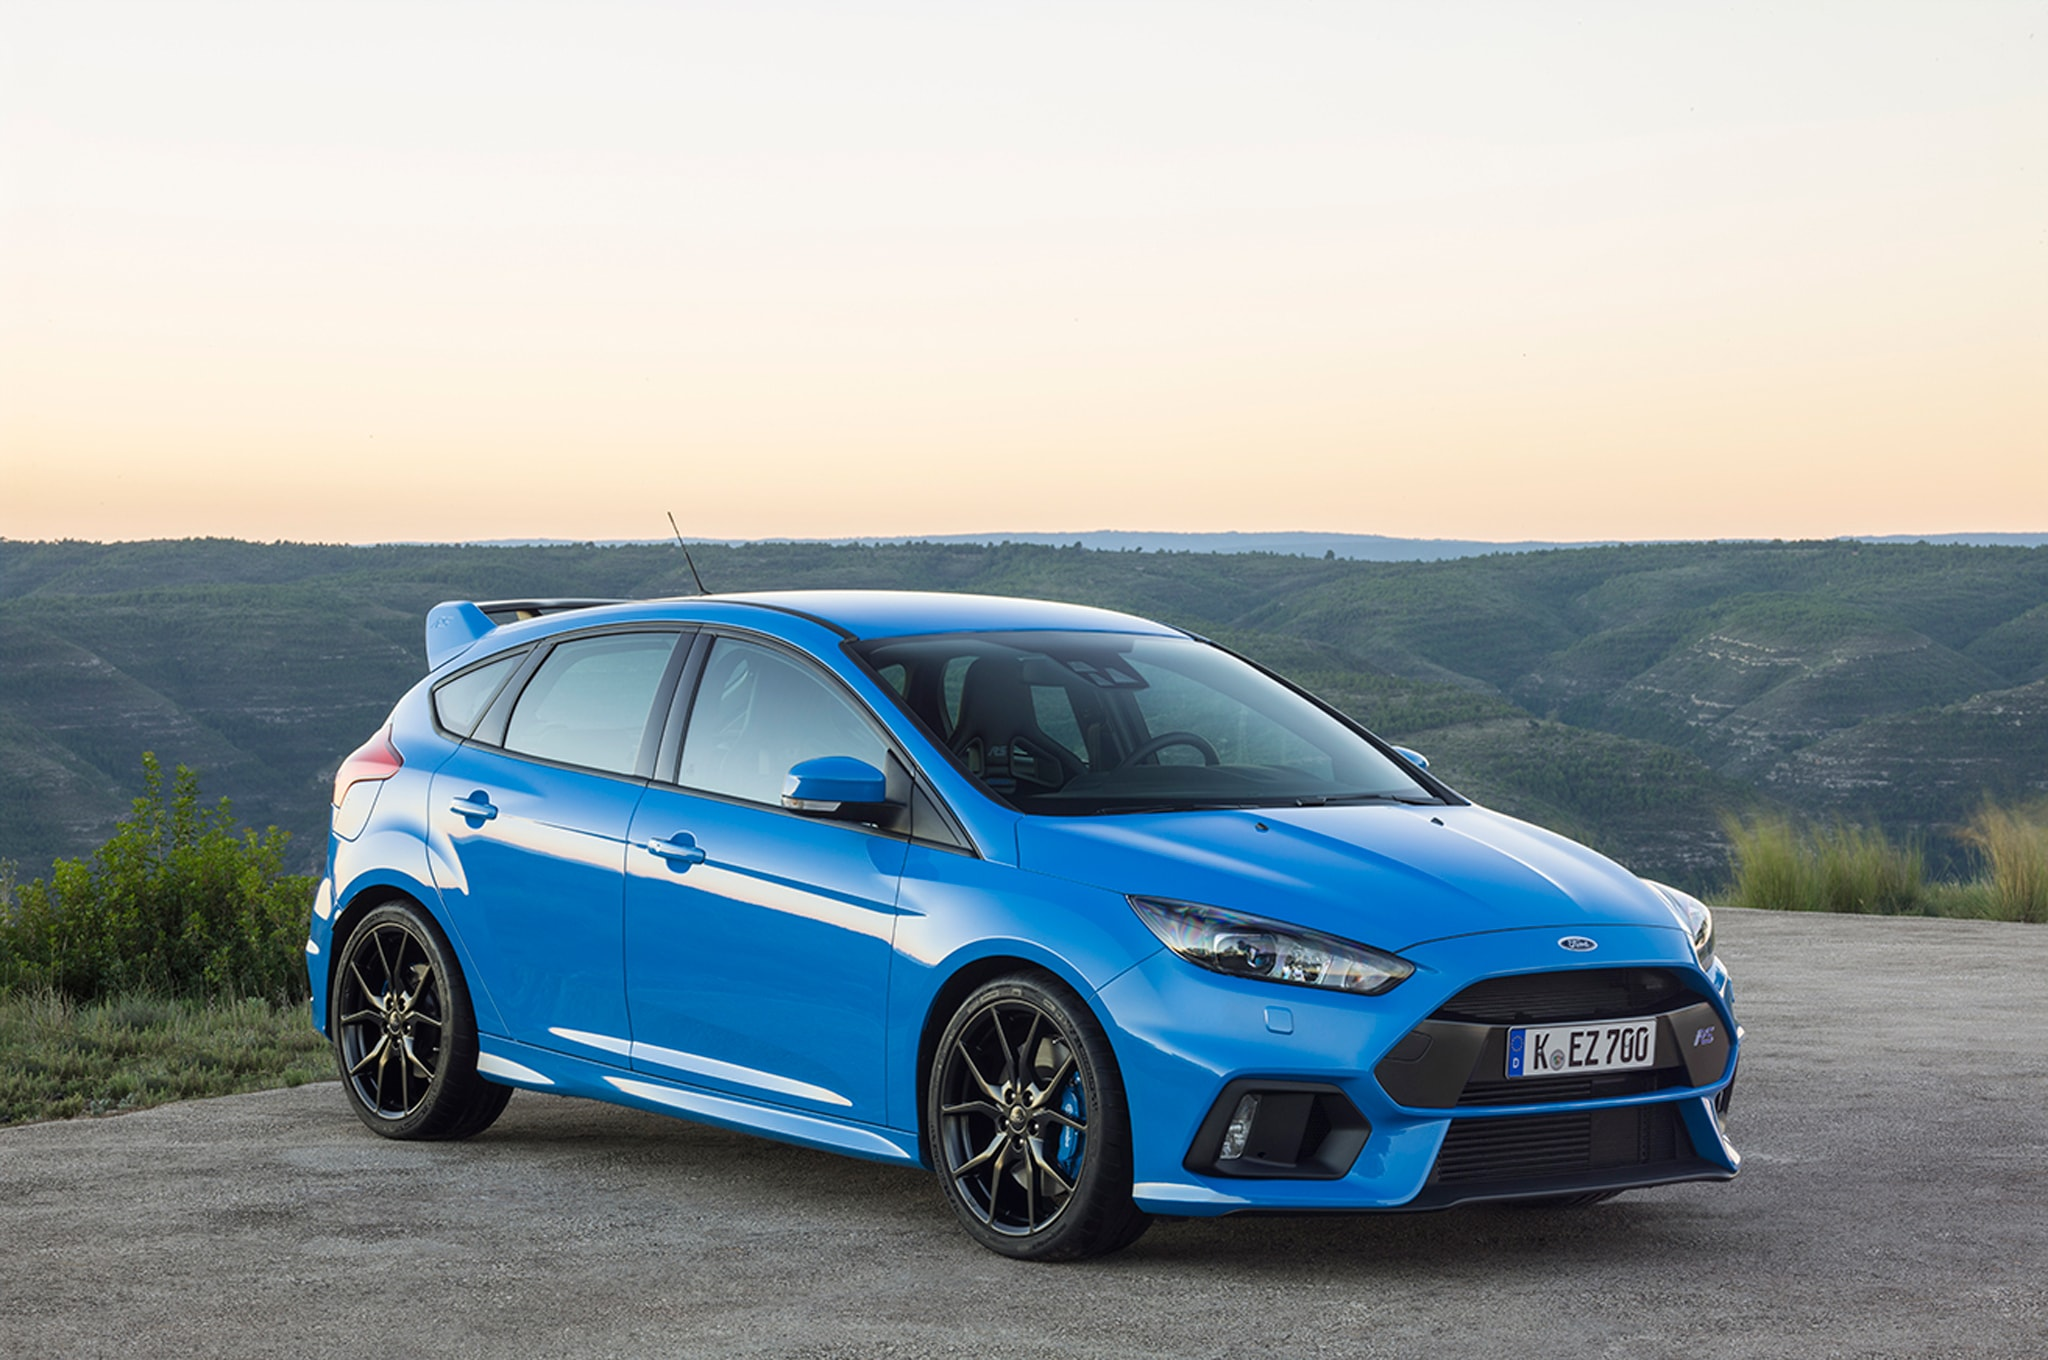 Ford Focus 3 Rs Hd Wallpapers 7wallpapers Net